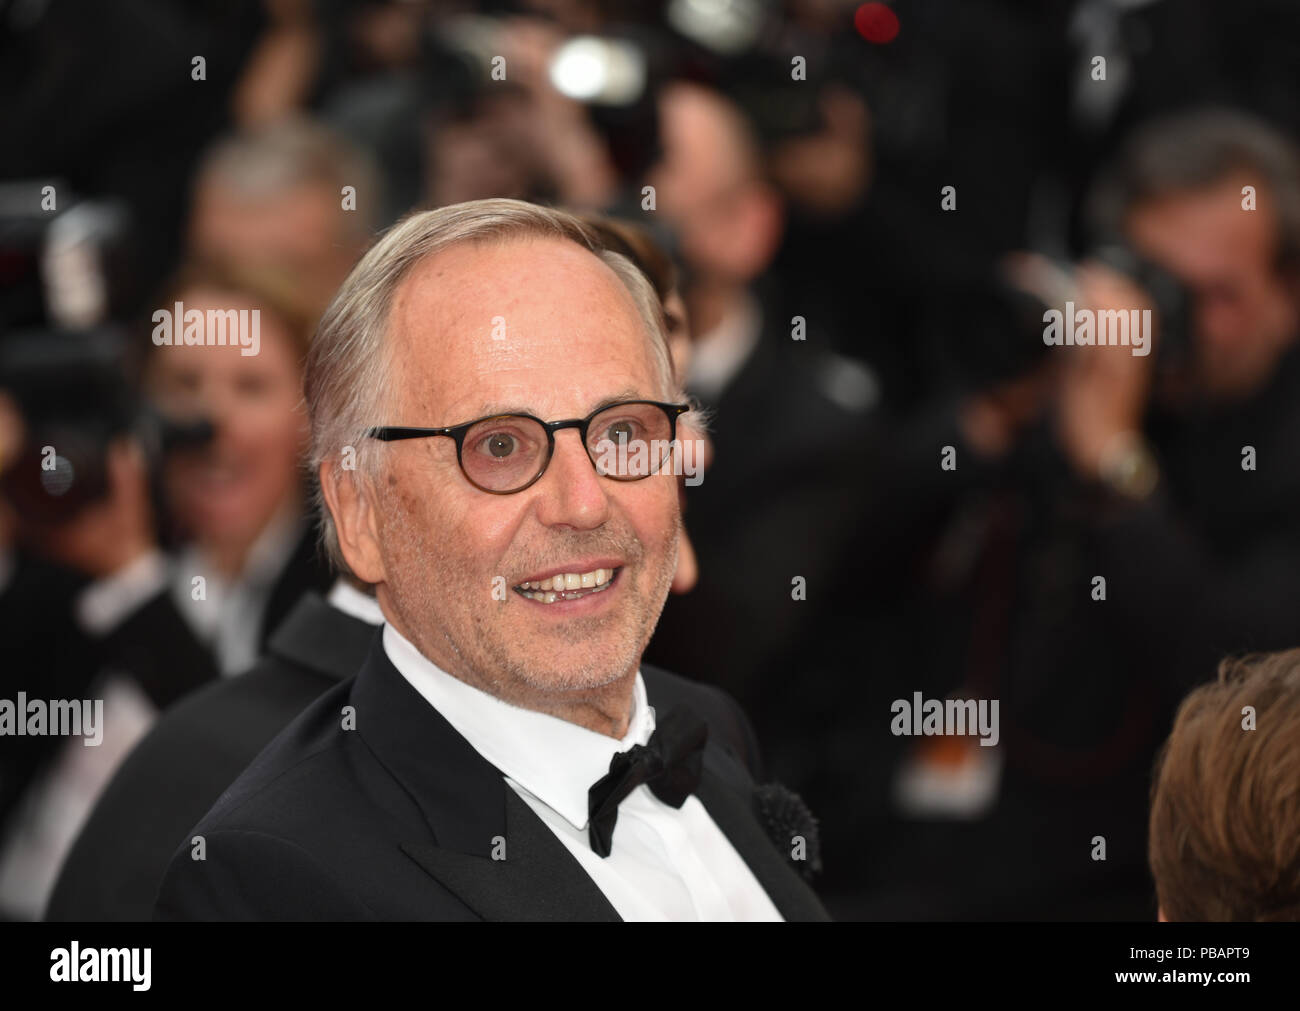 May 13, 2016 - Cannes, France: Fabrice Luchini attends 'Slack Bay' premiere  during the 69th Cannes film festival. Fabrice Luchini lors du 69eme  Festival de ...